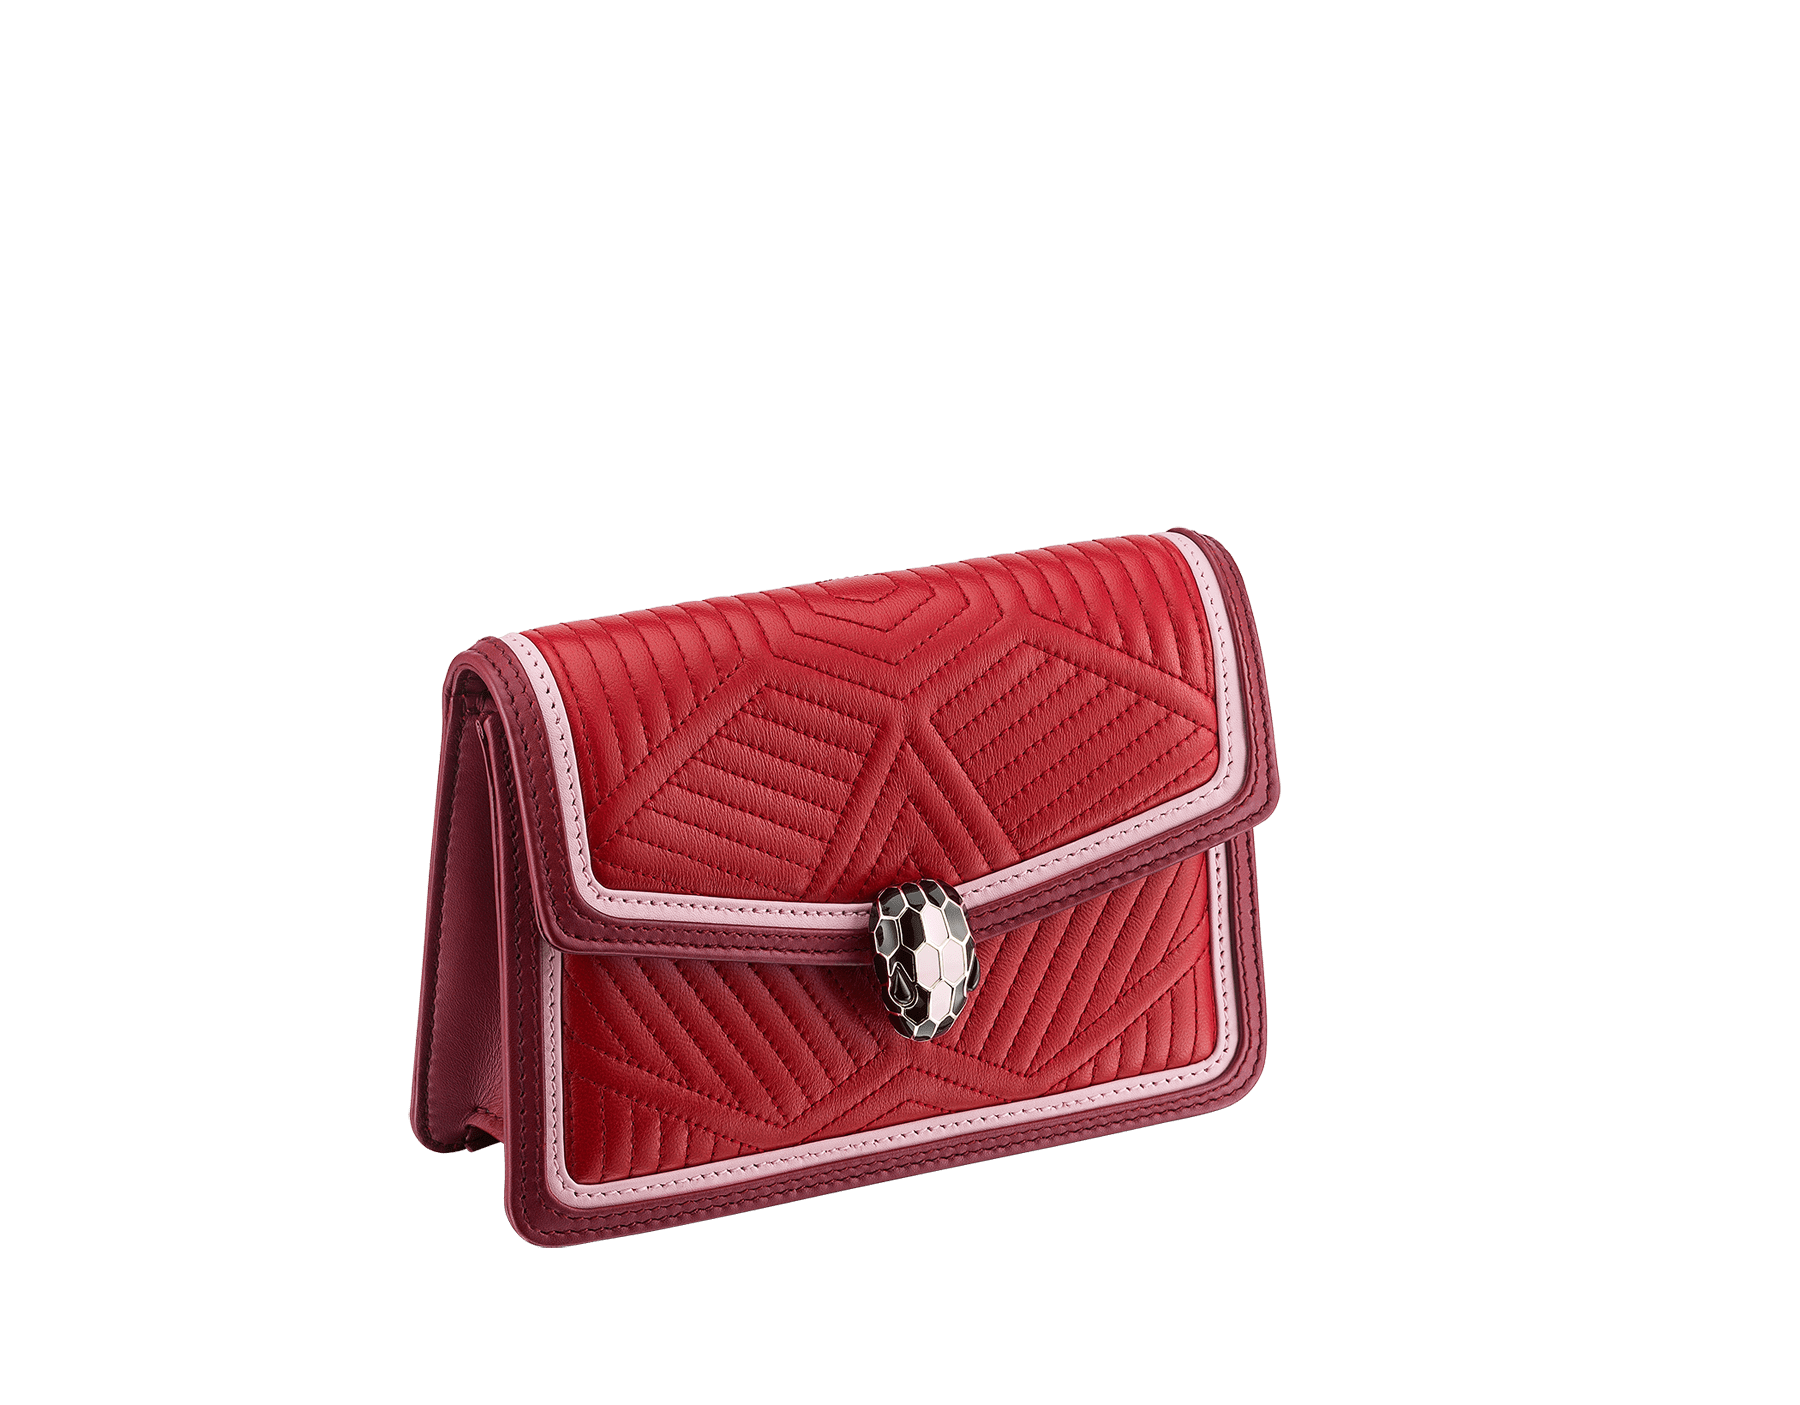 """""""Serpenti Diamond Blast"""" crossbody micro bag in ruby red quilted nappa leather body and Roman garnet calf leather frames. Iconic snakehead closure in light gold plated brass enriched with black and rosa di francia enamel and black onyx eyes. 288845 image 2"""